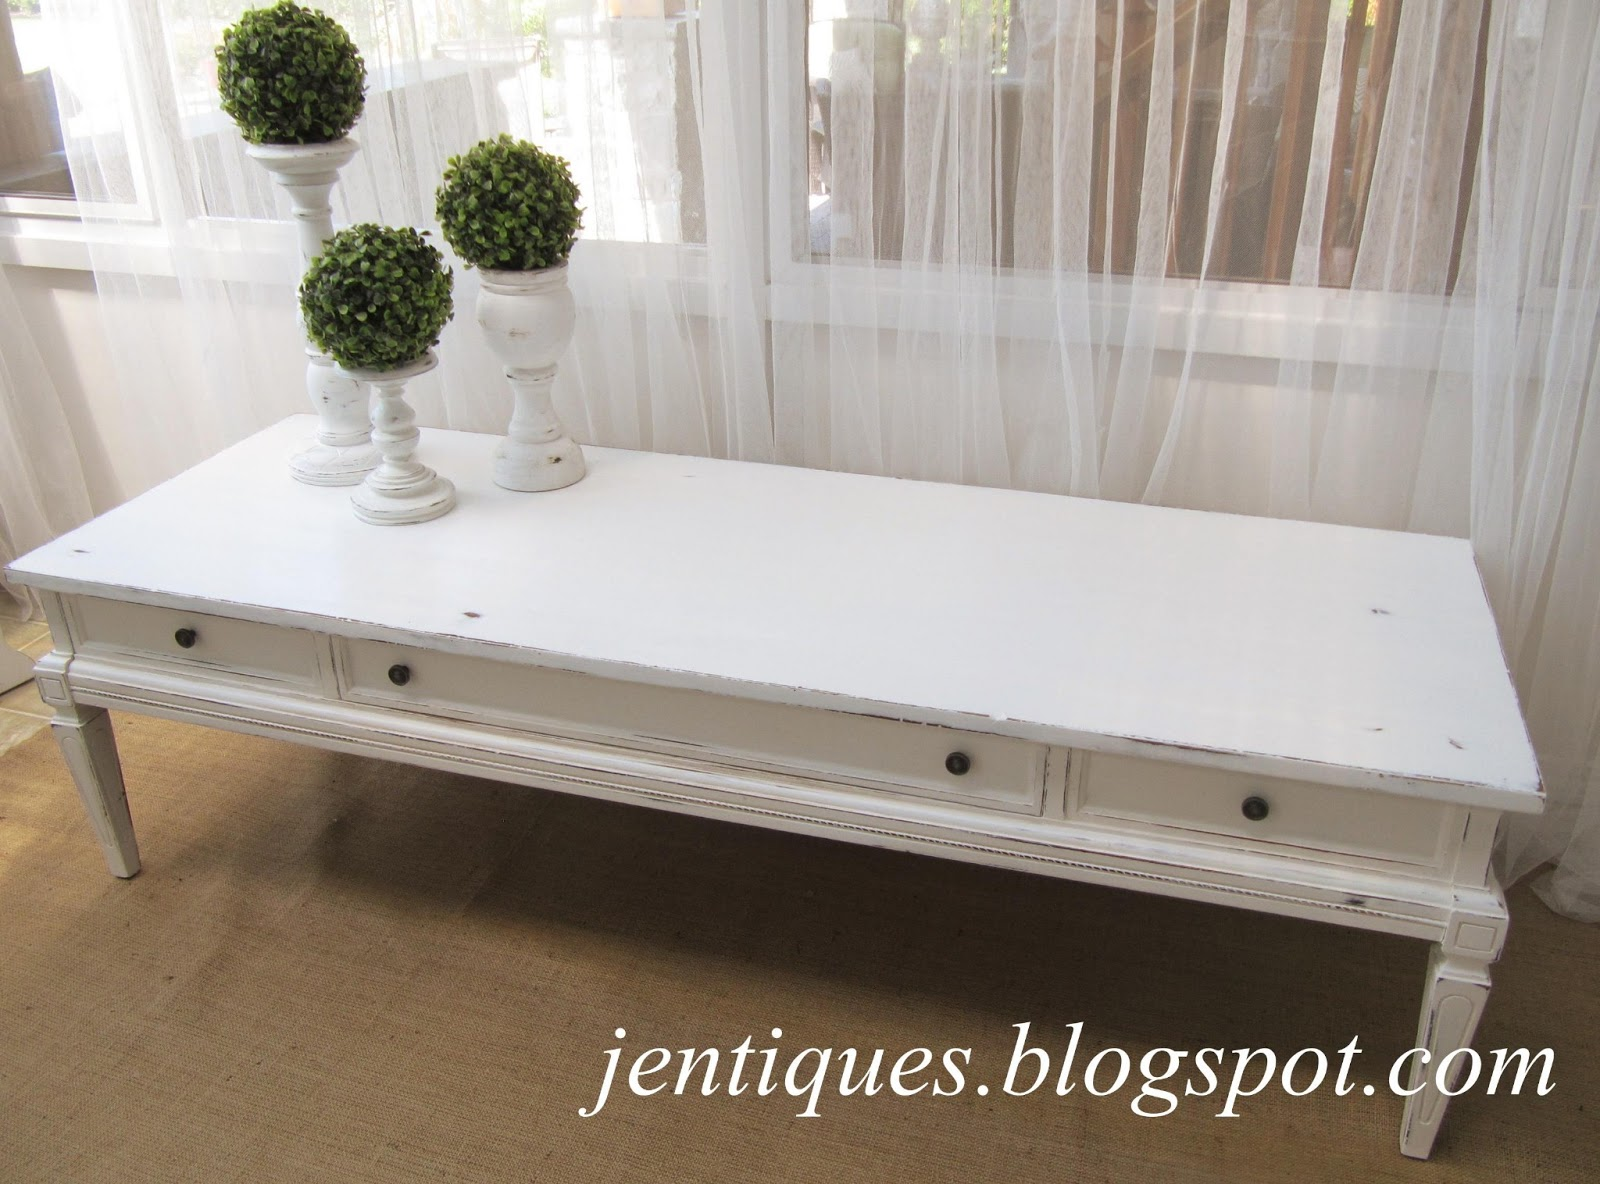 Jentiques: White Shabby Chic Coffee Table